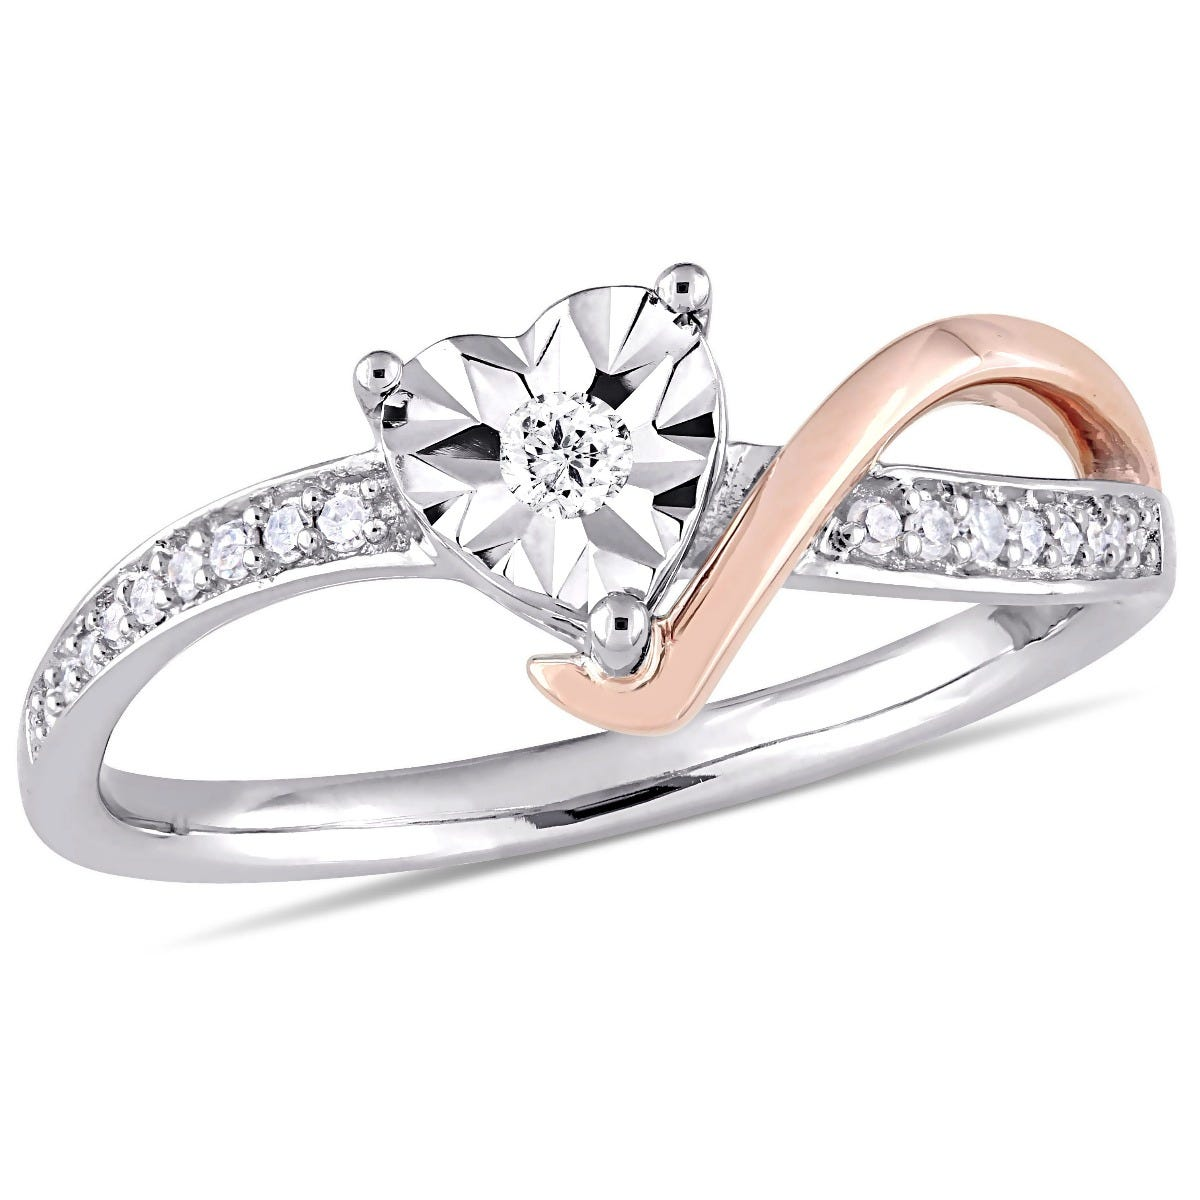 Heart-Shaped Diamond Twist Promise Ring 1/10ctw. in 10k White & Rose Gold